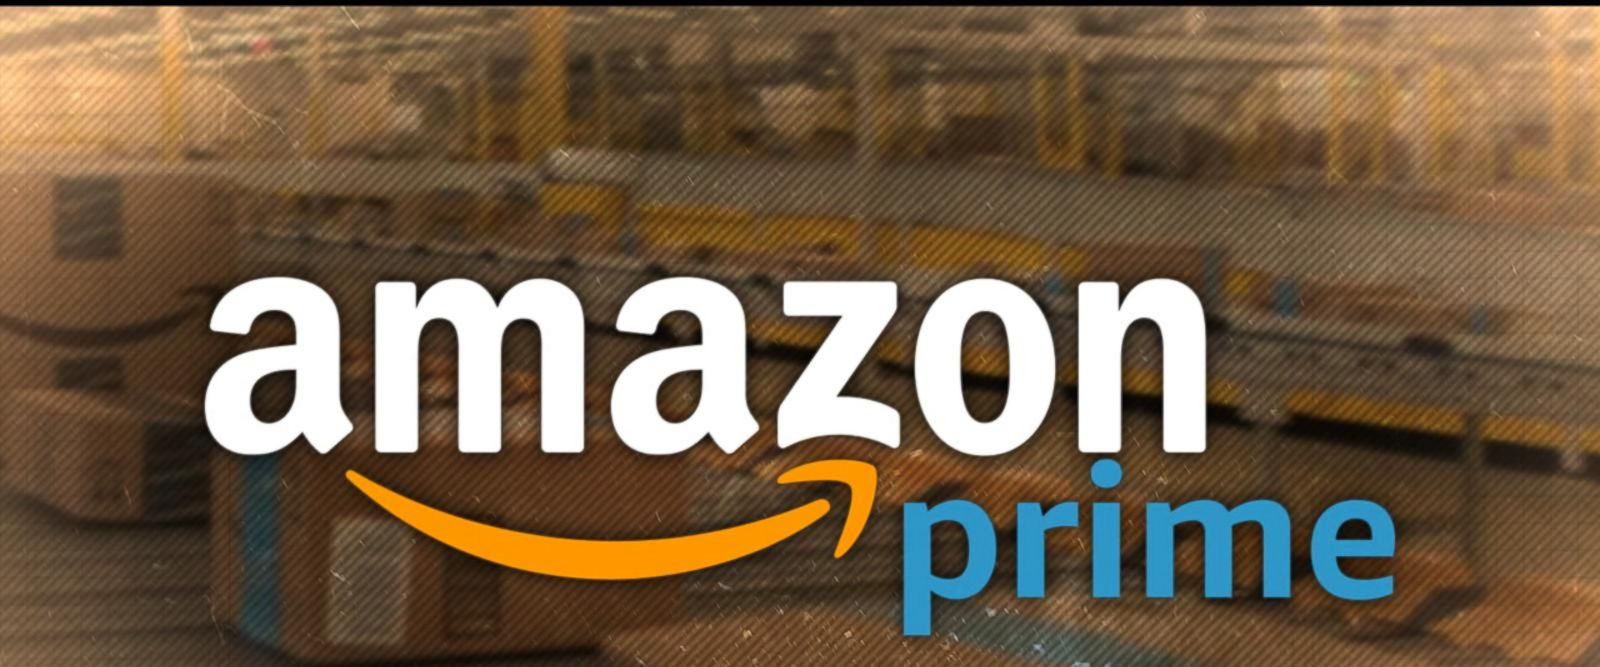 VIDEO: Amazon Prime set to increase its annual membership fee by $10